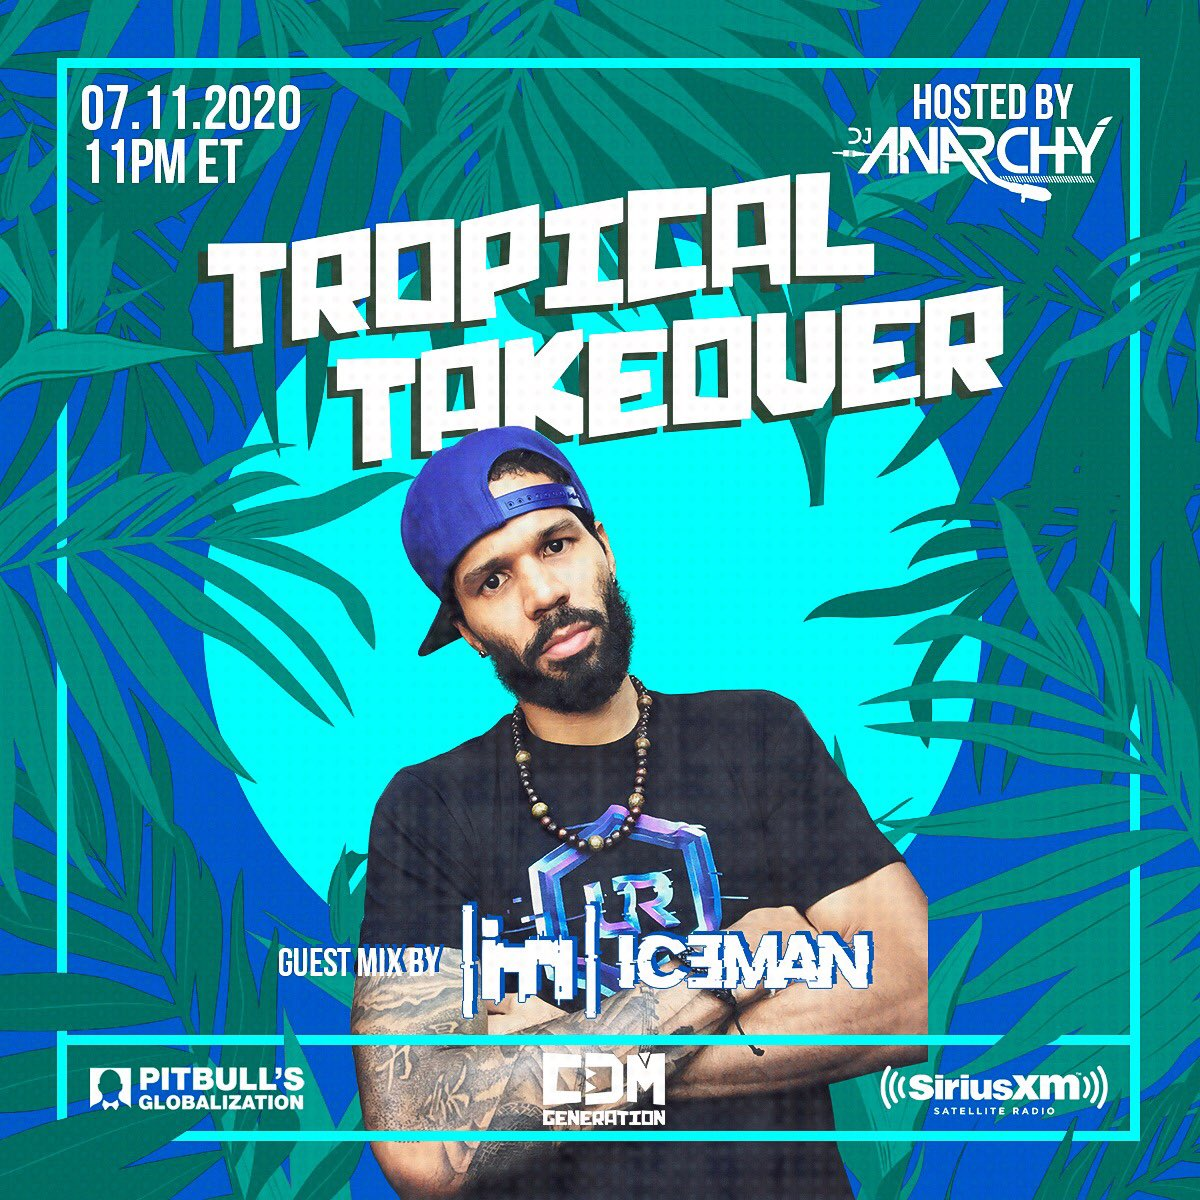 @iceman_ur Guest mix this Saturday on @GlobalizationXM @SIRIUSXM Channel 13 #TropicalTakeover https://t.co/qSjDDXBNDp